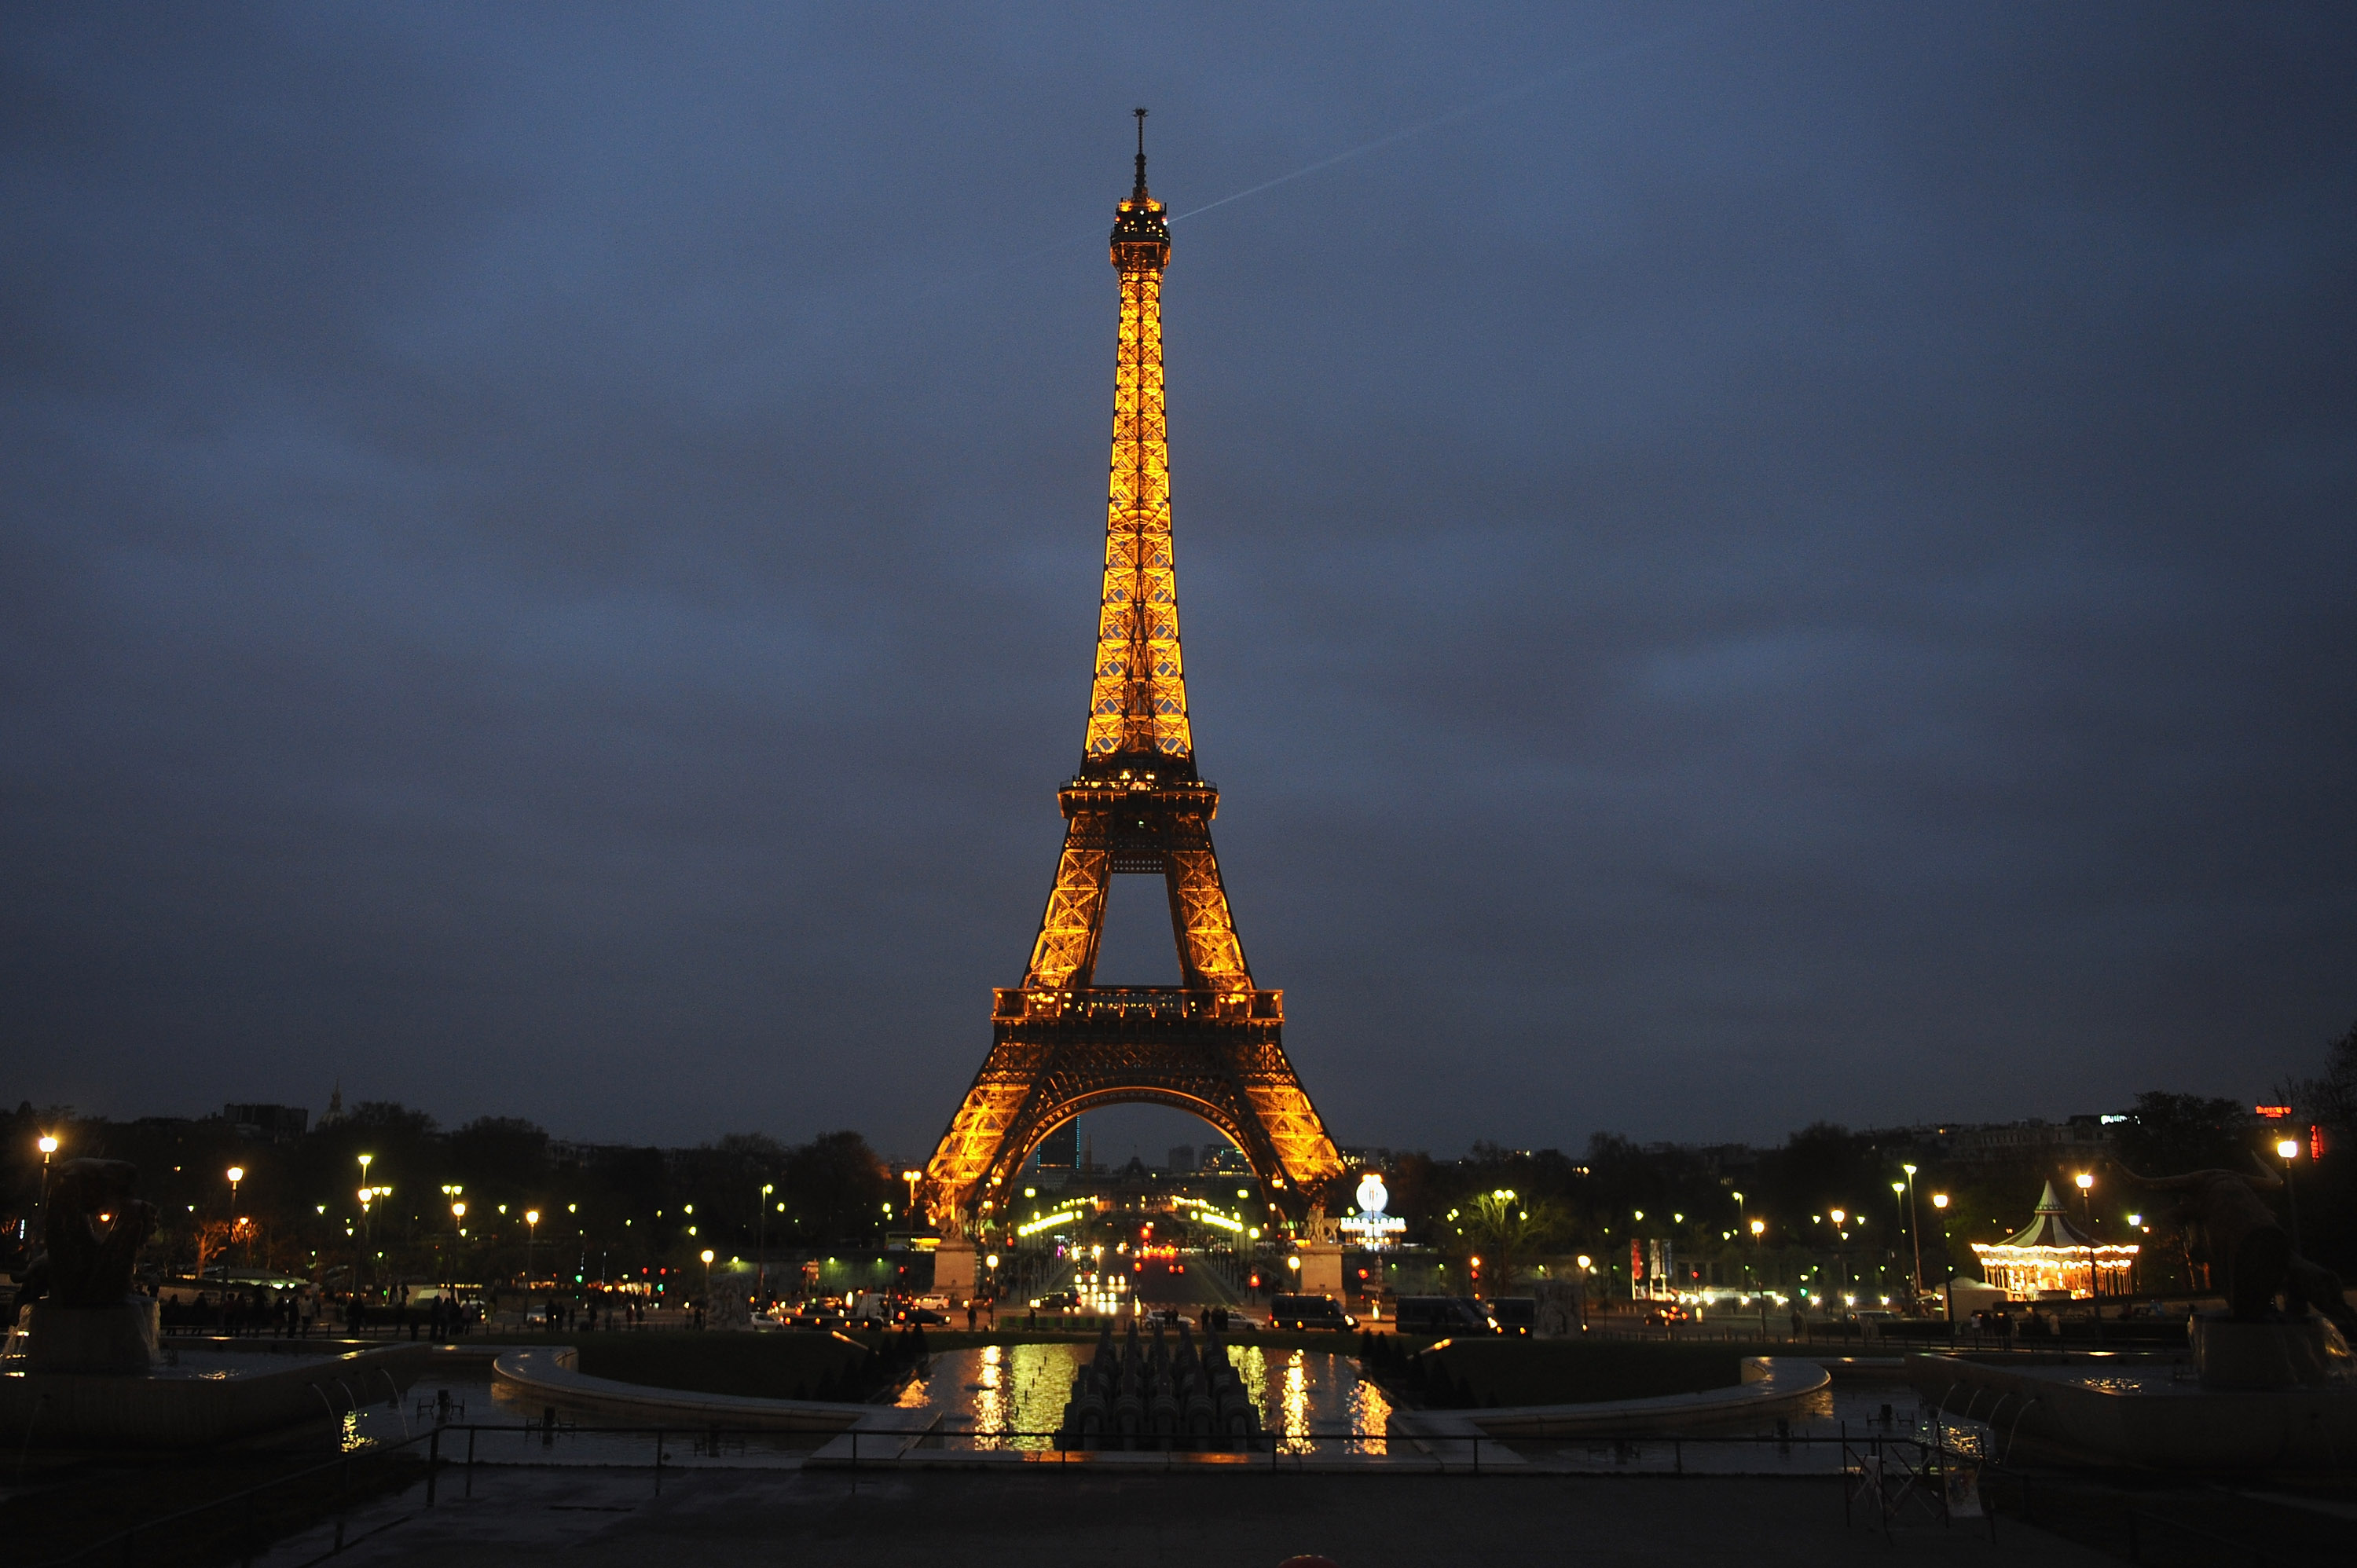 The Eiffel Tower is seen before the lights are switched off for Earth Hour 2012, on March 31, 2012 in Paris, France.